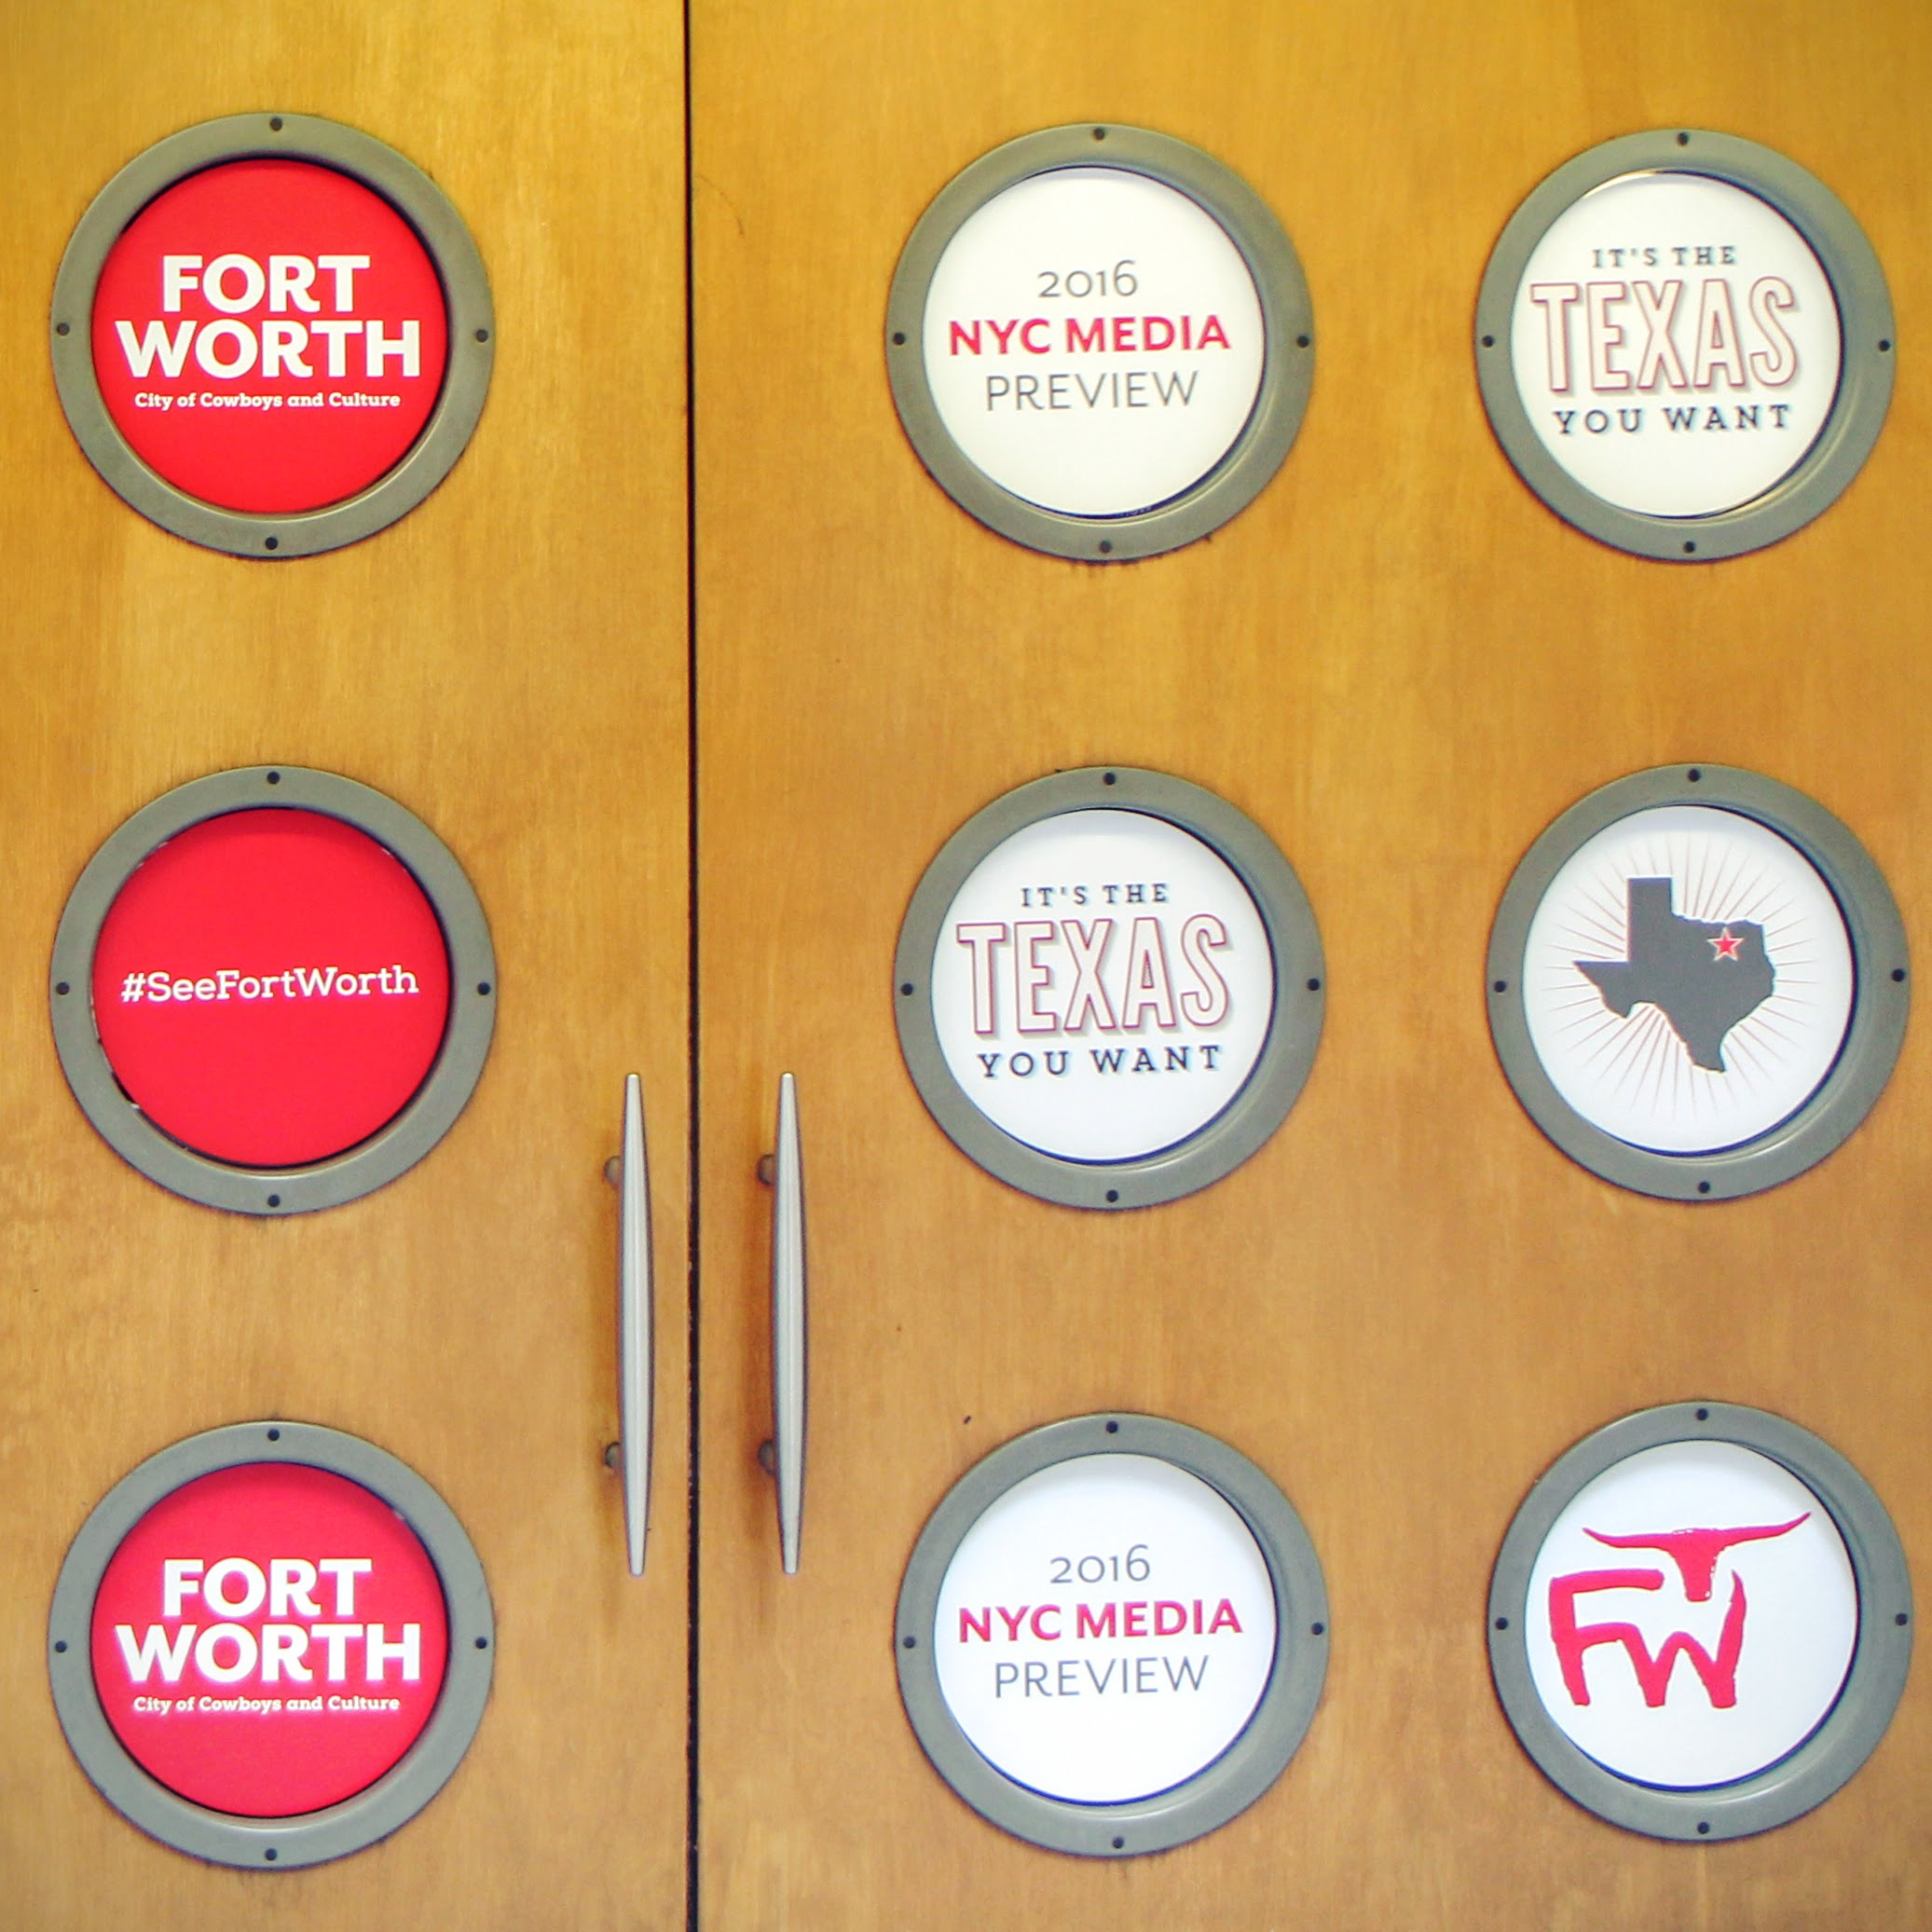 Fort Worth porthole signage